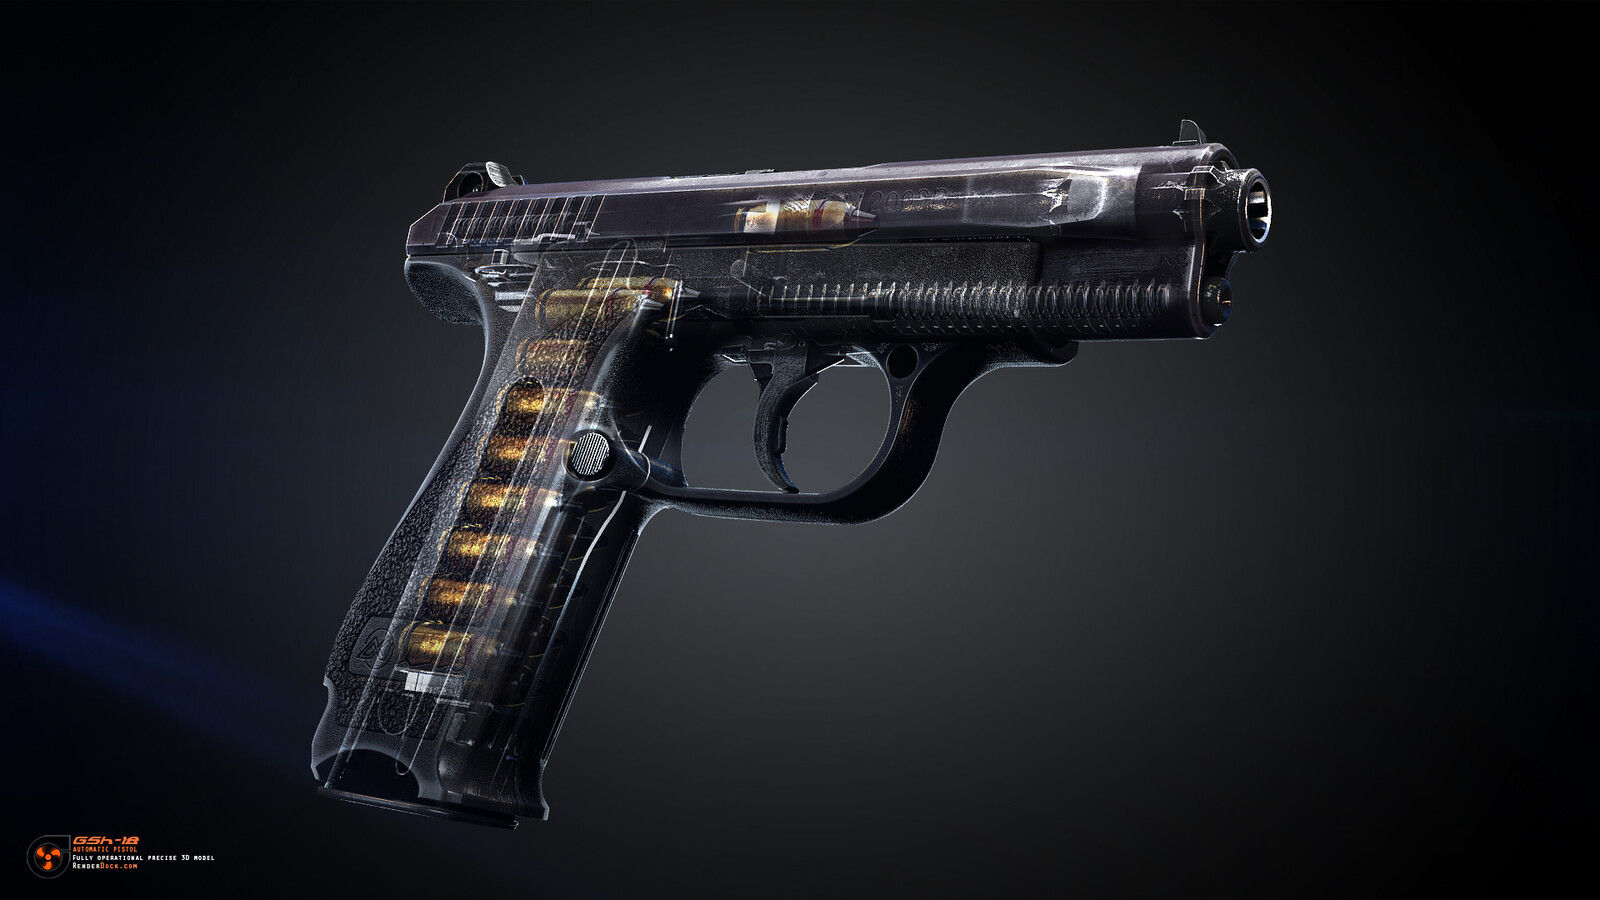 The name GSh-18 stands for the two designers surnames, Vasily Gryazev & Arkadiy Shipunov,two famous designers that created various cutting-edge soviet cold war era weapons.